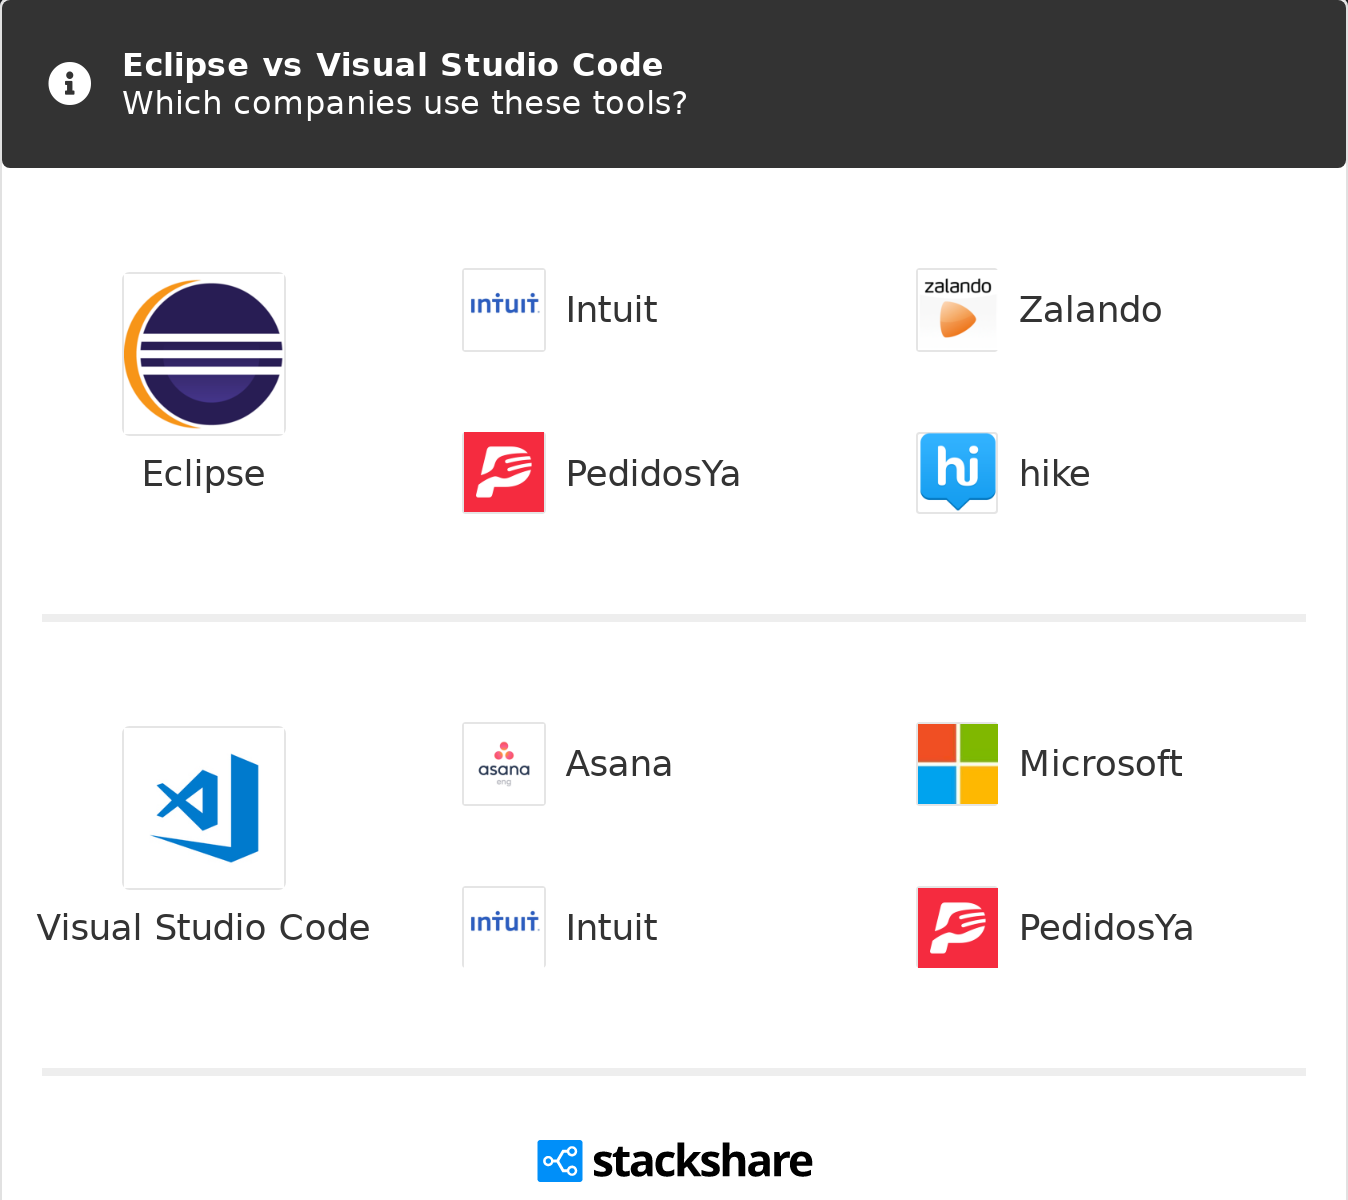 Eclipse vs Visual Studio Code | What are the differences?